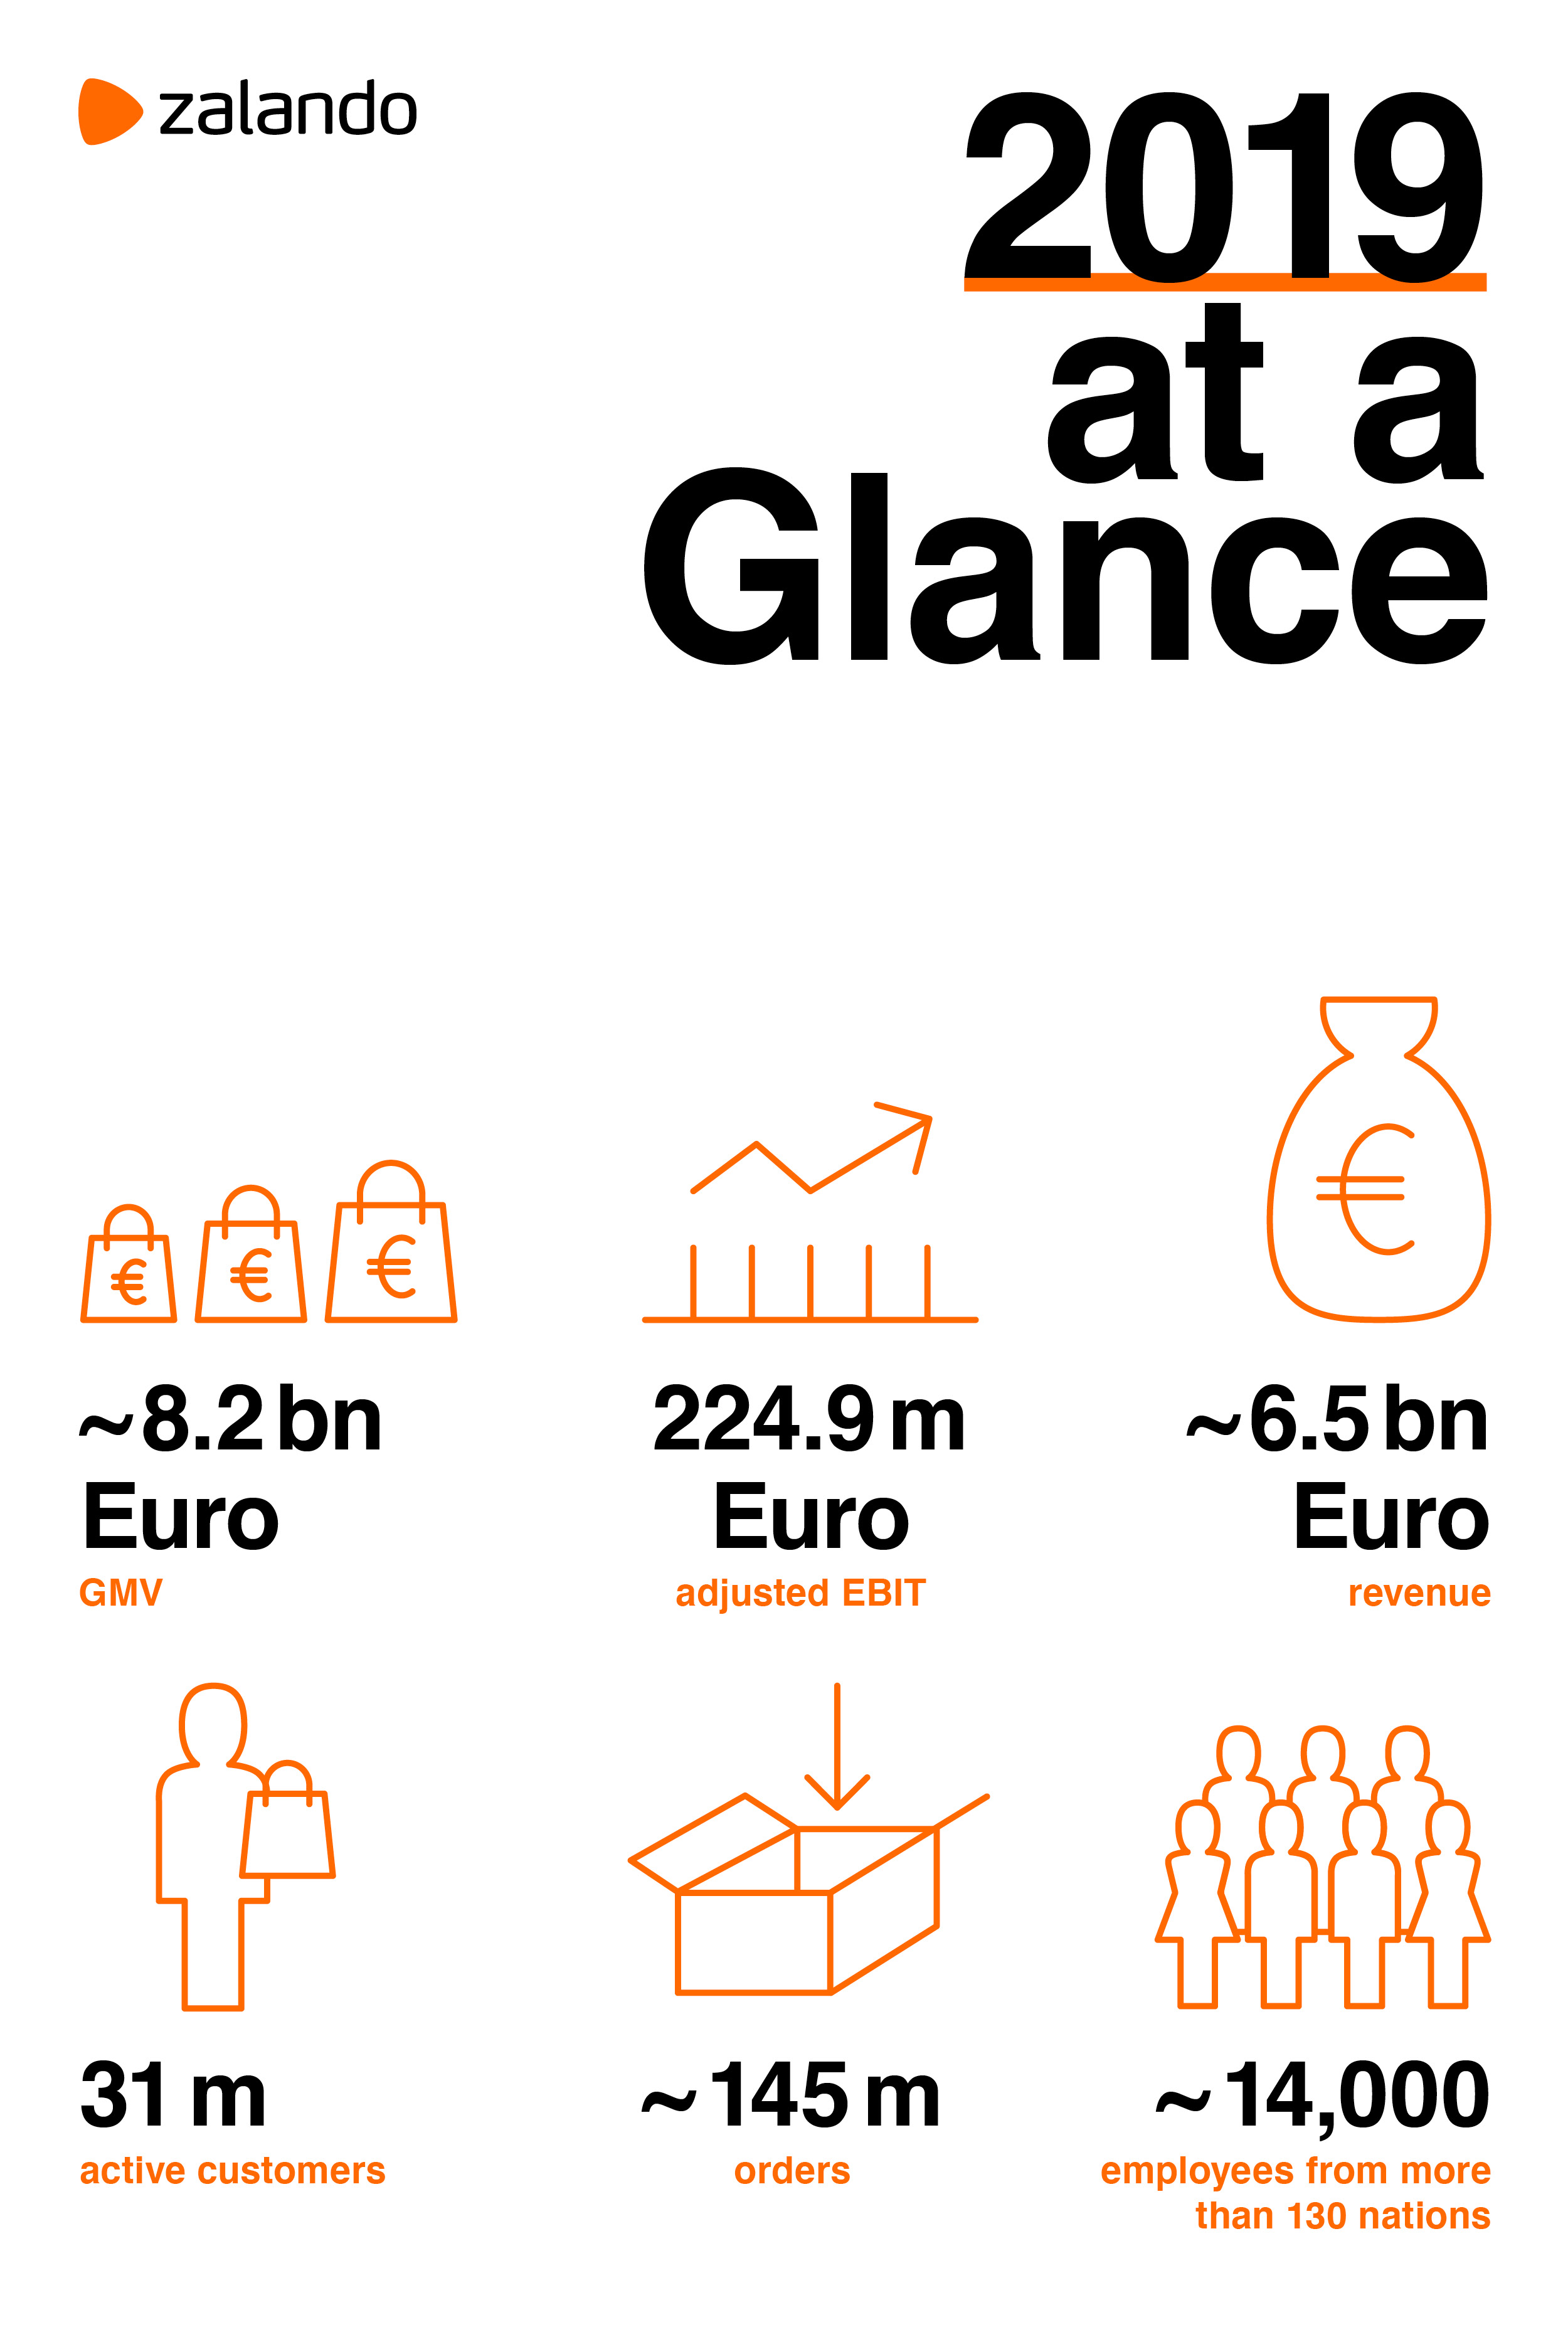 Zalando SE Graphic 2019 at a Glance